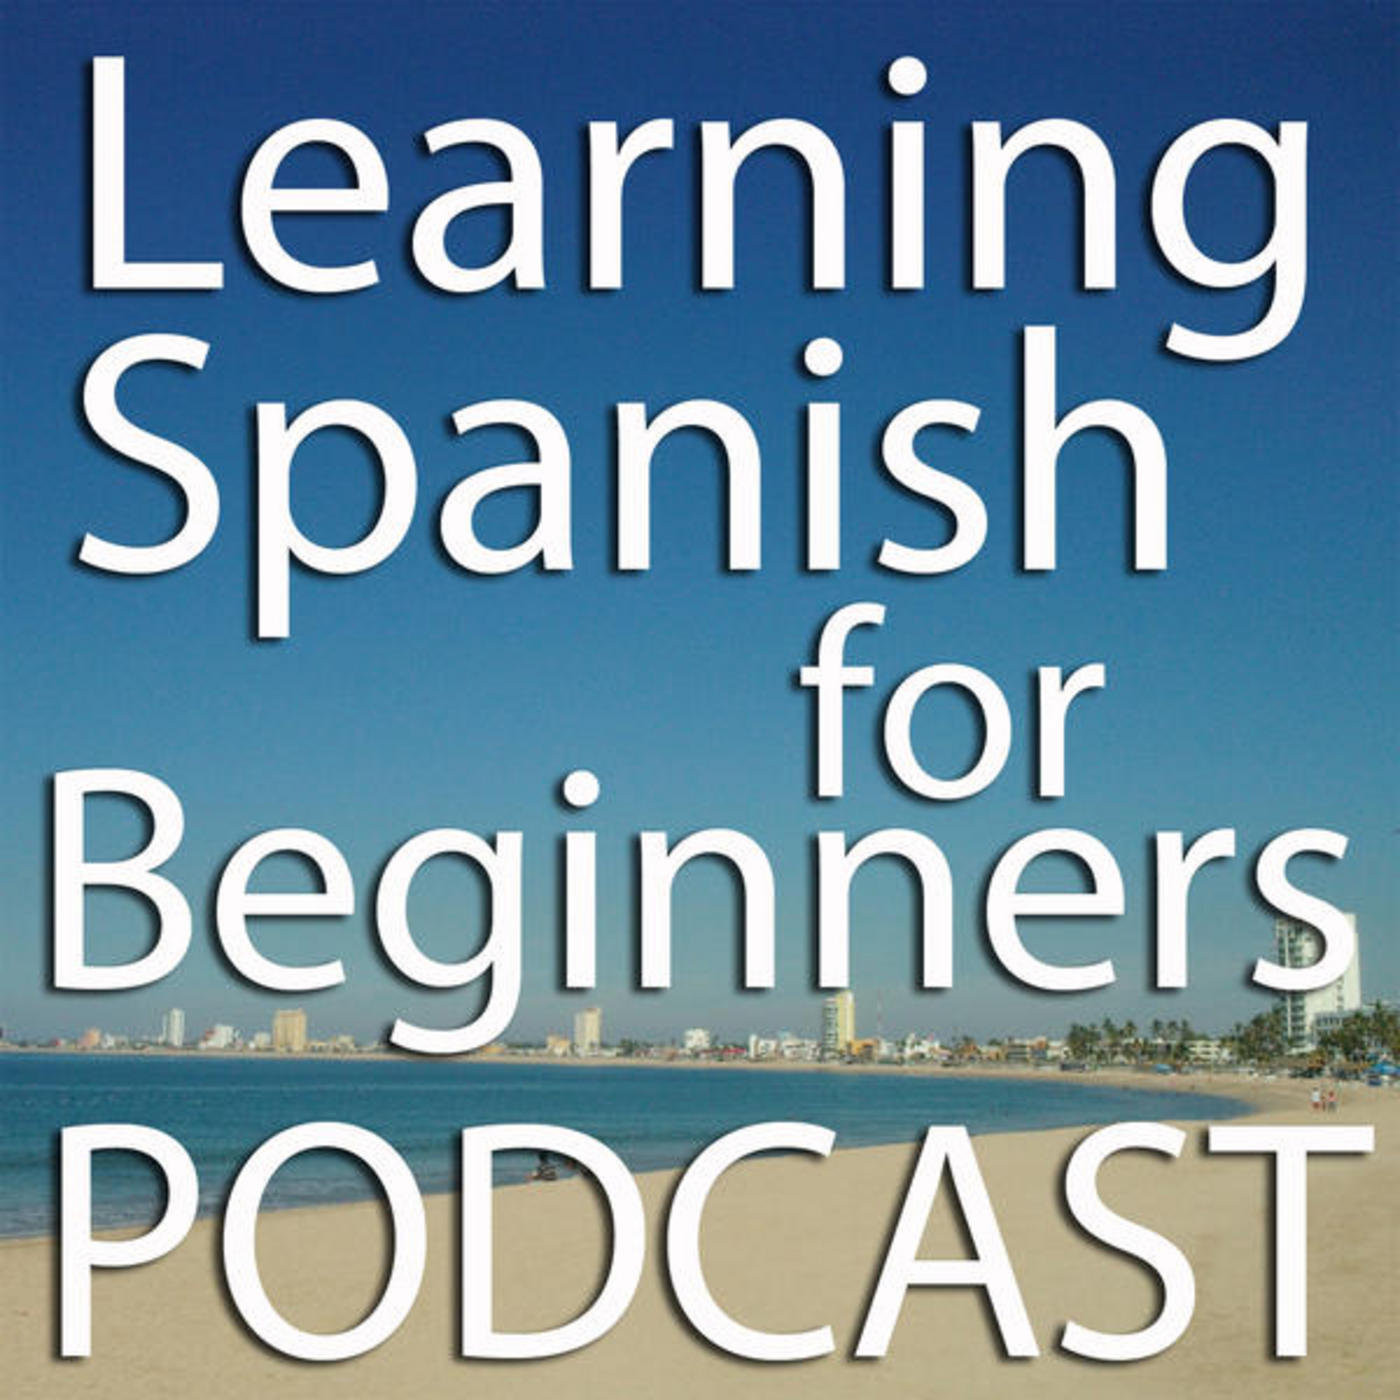 Learning Spanish for Beginners Podcast – The Place